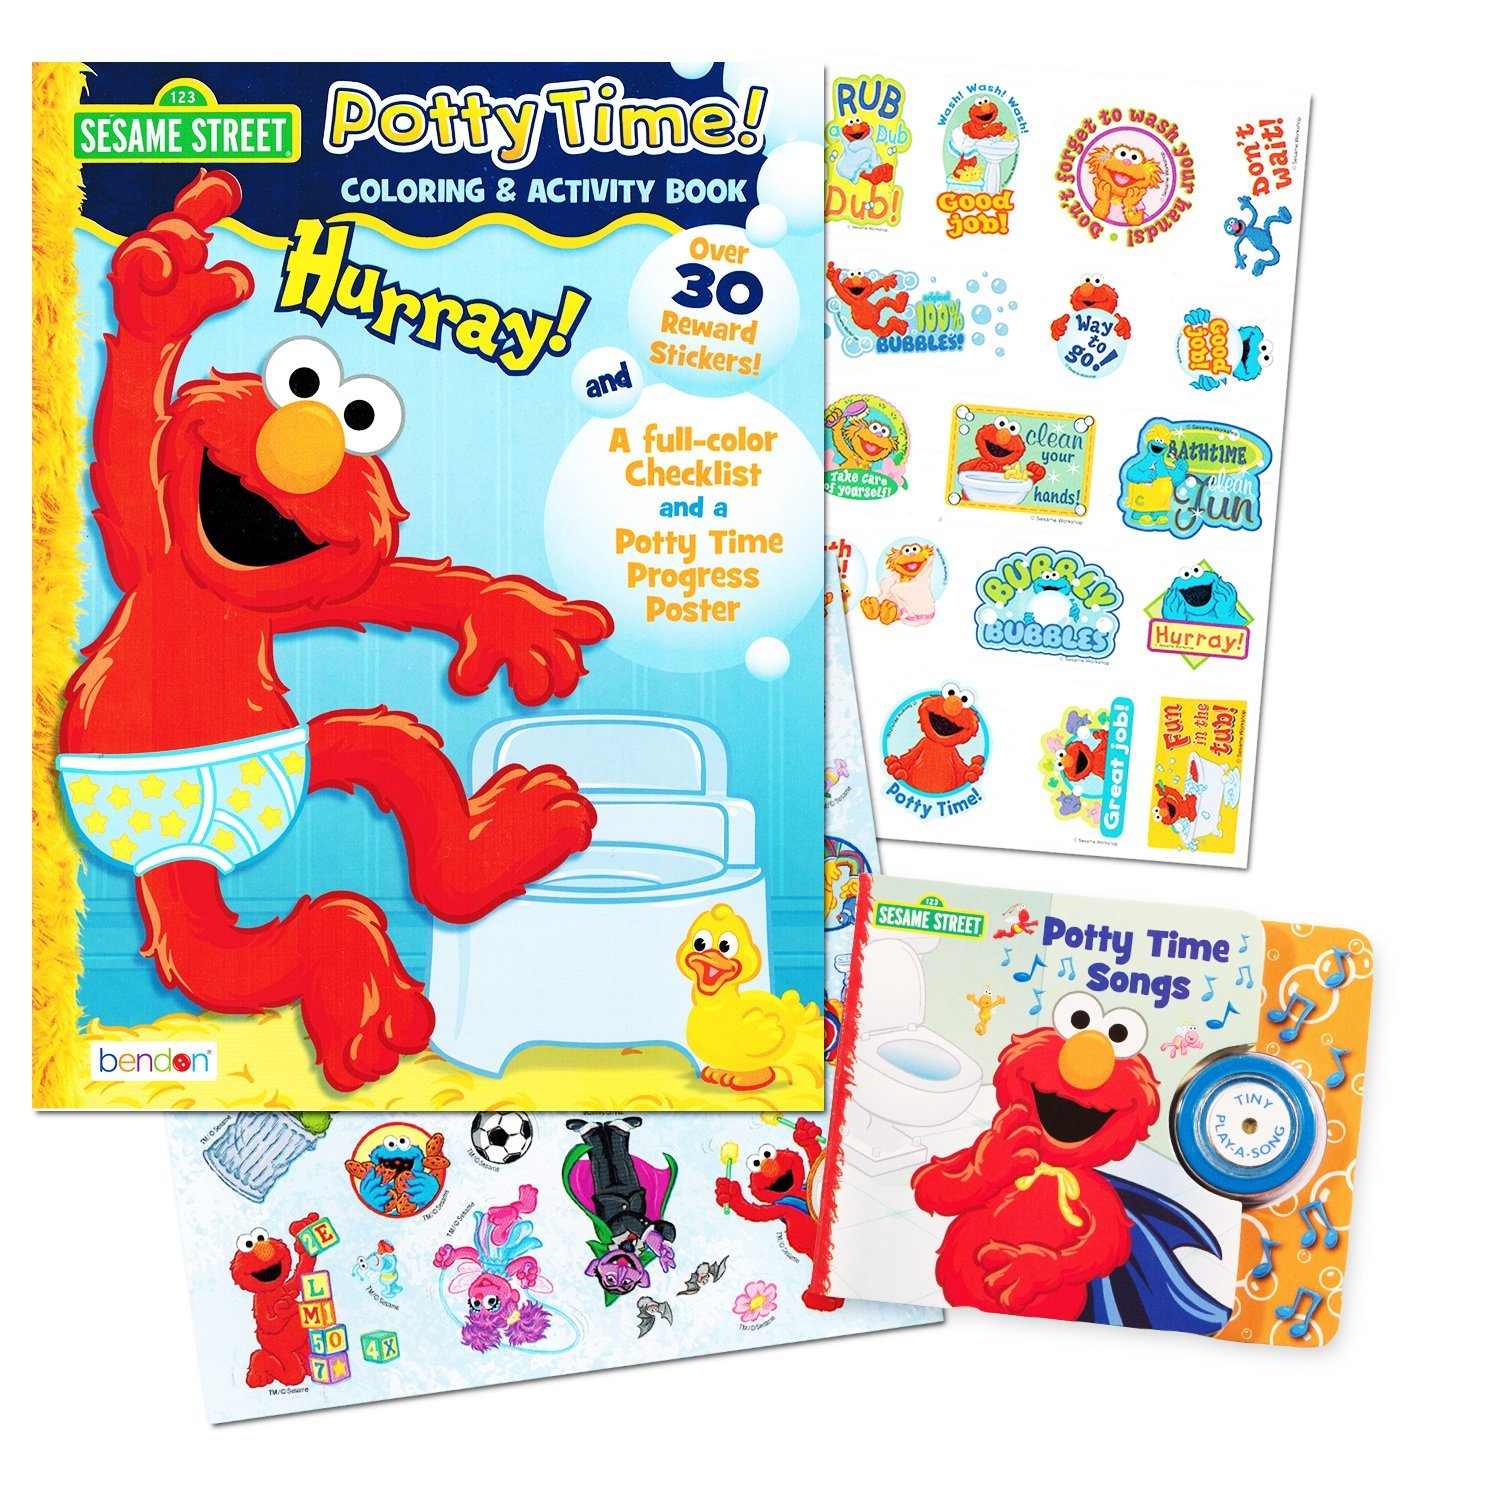 amazon com sesame street elmo potty training book set 2 books amazon com sesame street elmo potty training book set 2 books potty time songs sing along book potty time coloring and activity book potty